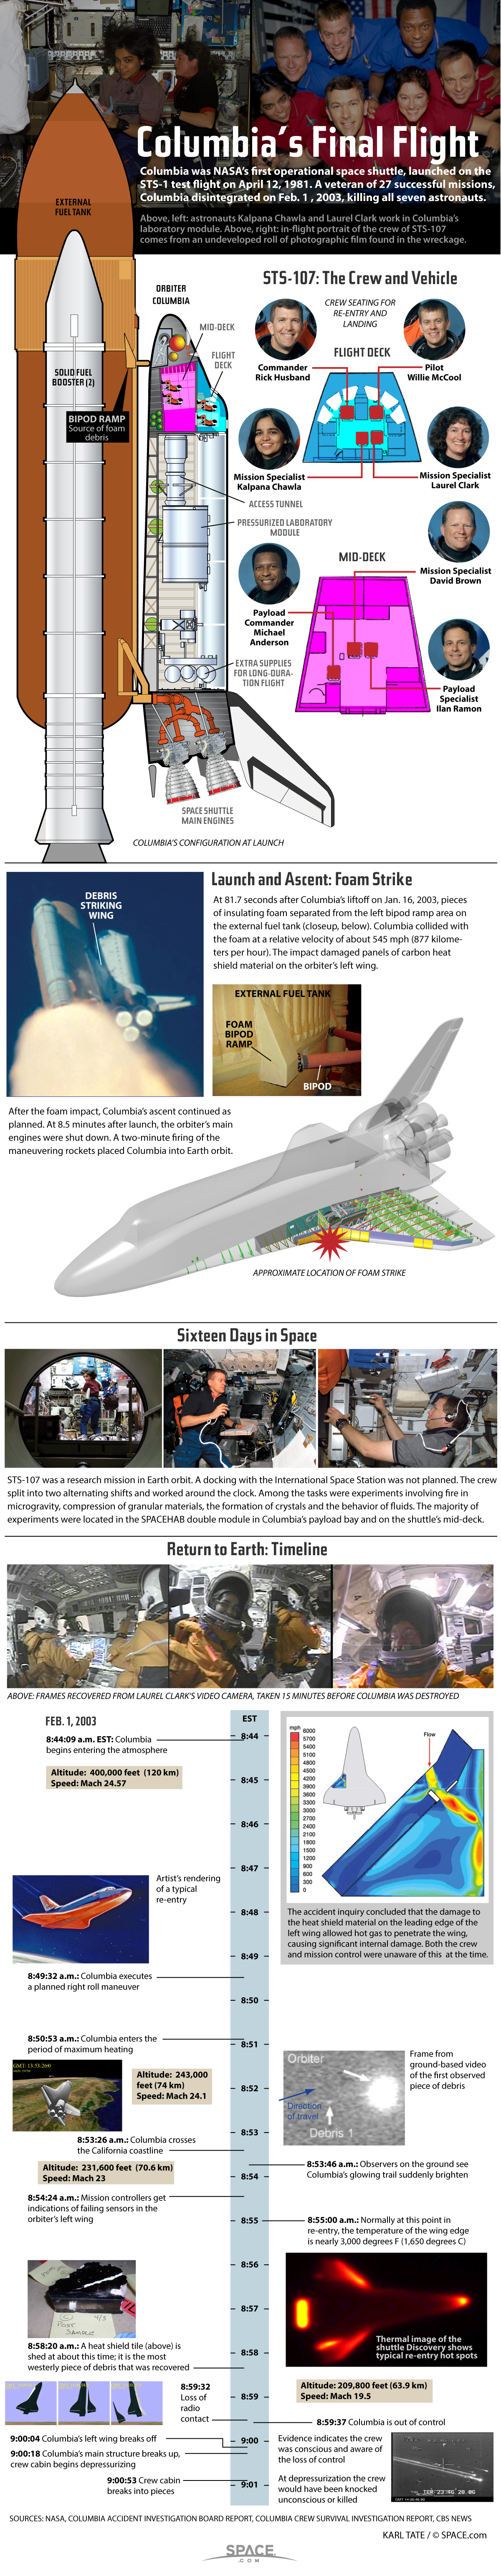 Image Gallery nasa accidents timeline